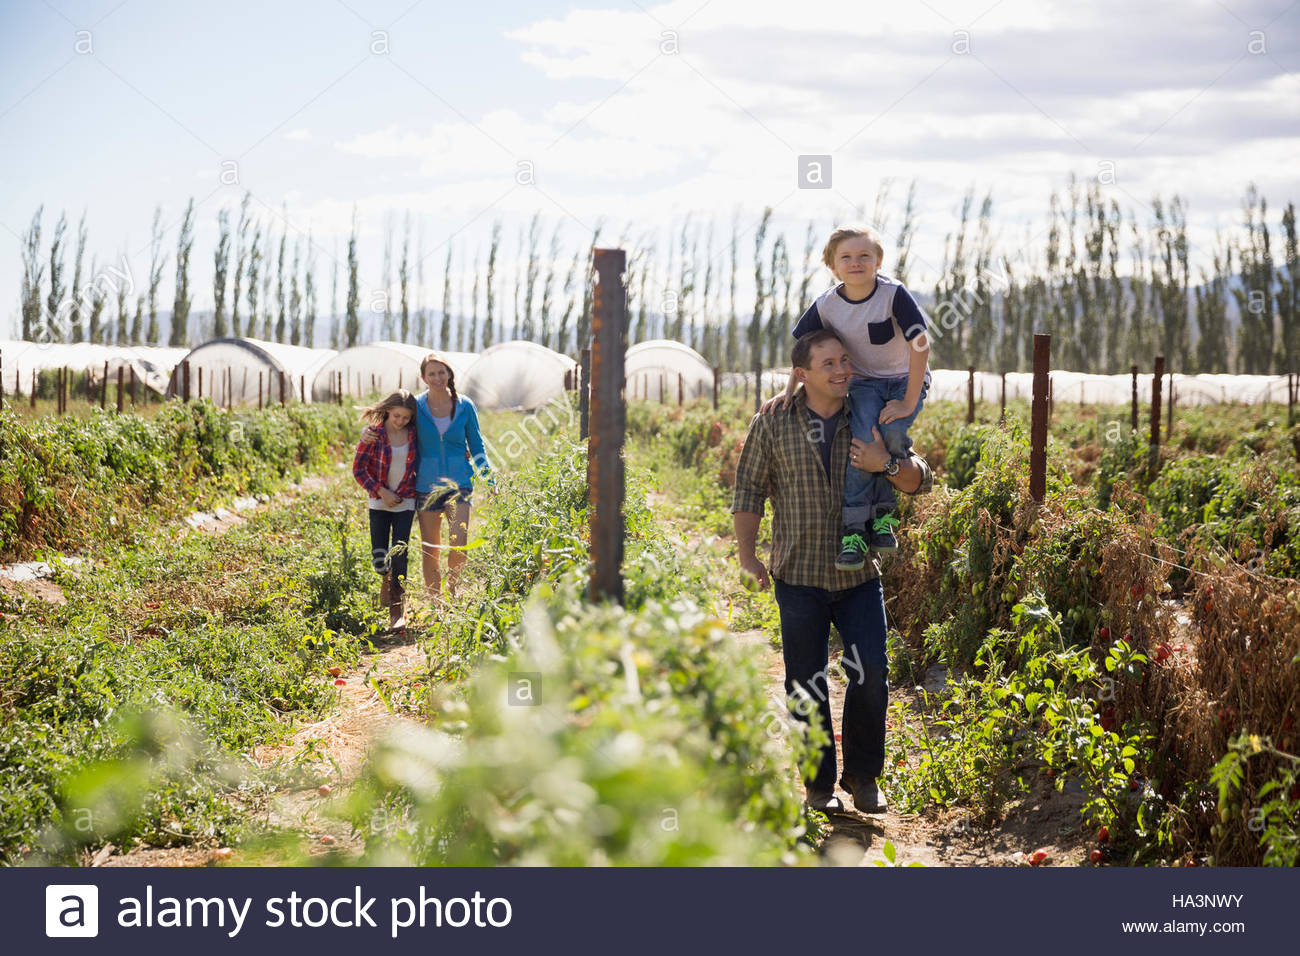 Family walking in sunny rural crop field - Stock Image